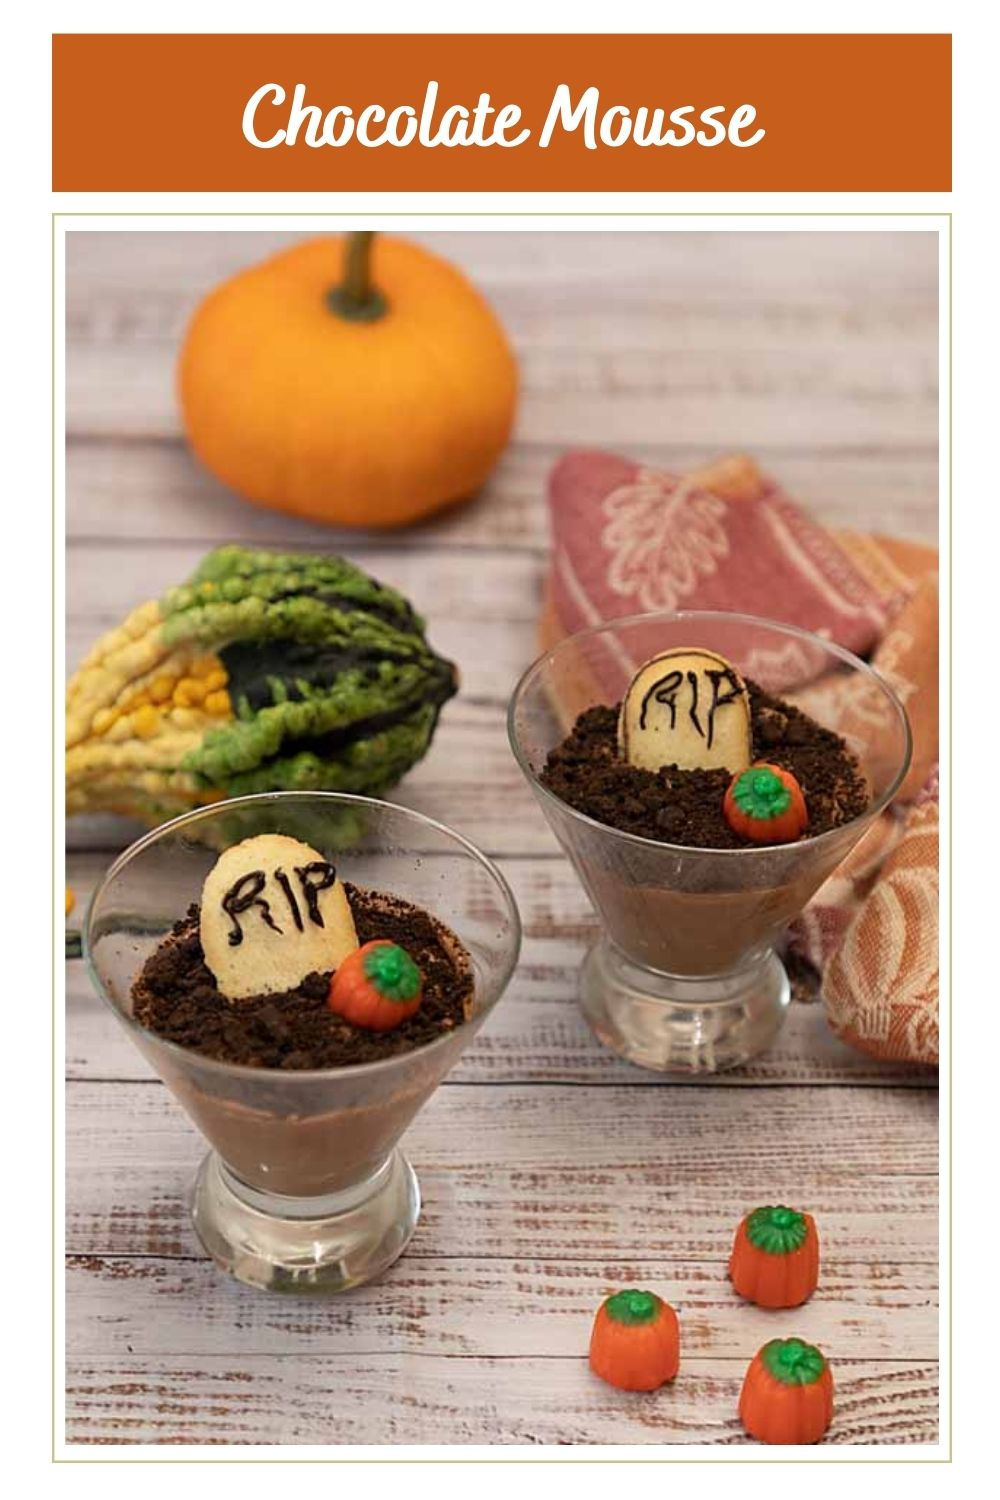 Graveyard Chocolate Mousse is creamy chocolate mousse dressed up for Halloween, complete with cookie gravestones.